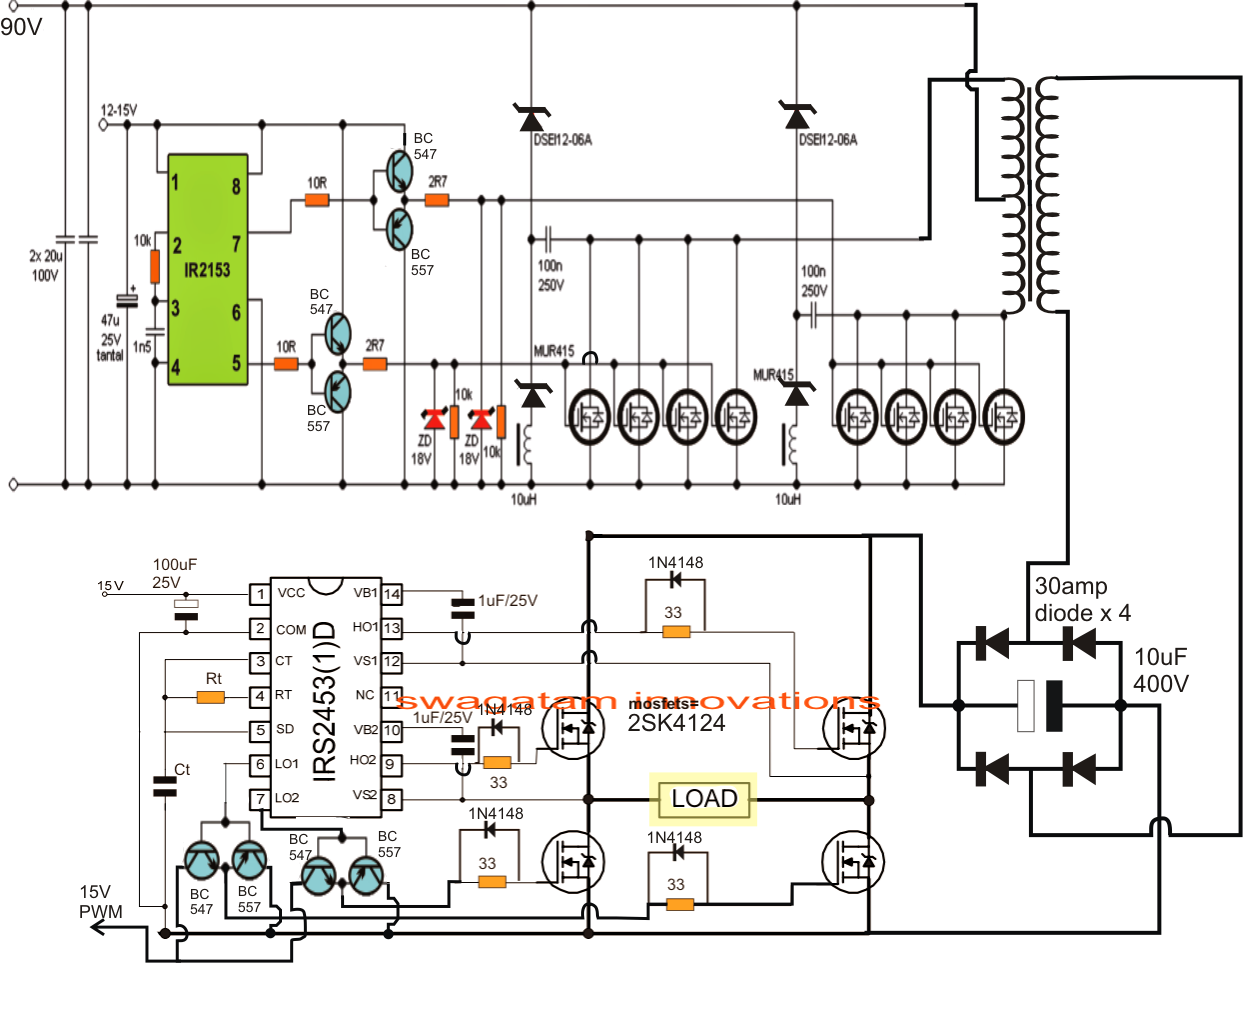 pwm solar charge controller schematic with Inverter Based Generator on Index2 likewise Inverter Based Generator as well Solar Controller Wiring Diagram together with Mosfet Based 500 Watt  m Inverter With Solar Battery Charger Controller My B Tech Eee Final Year Project also Ev Charger Installation Diagram.